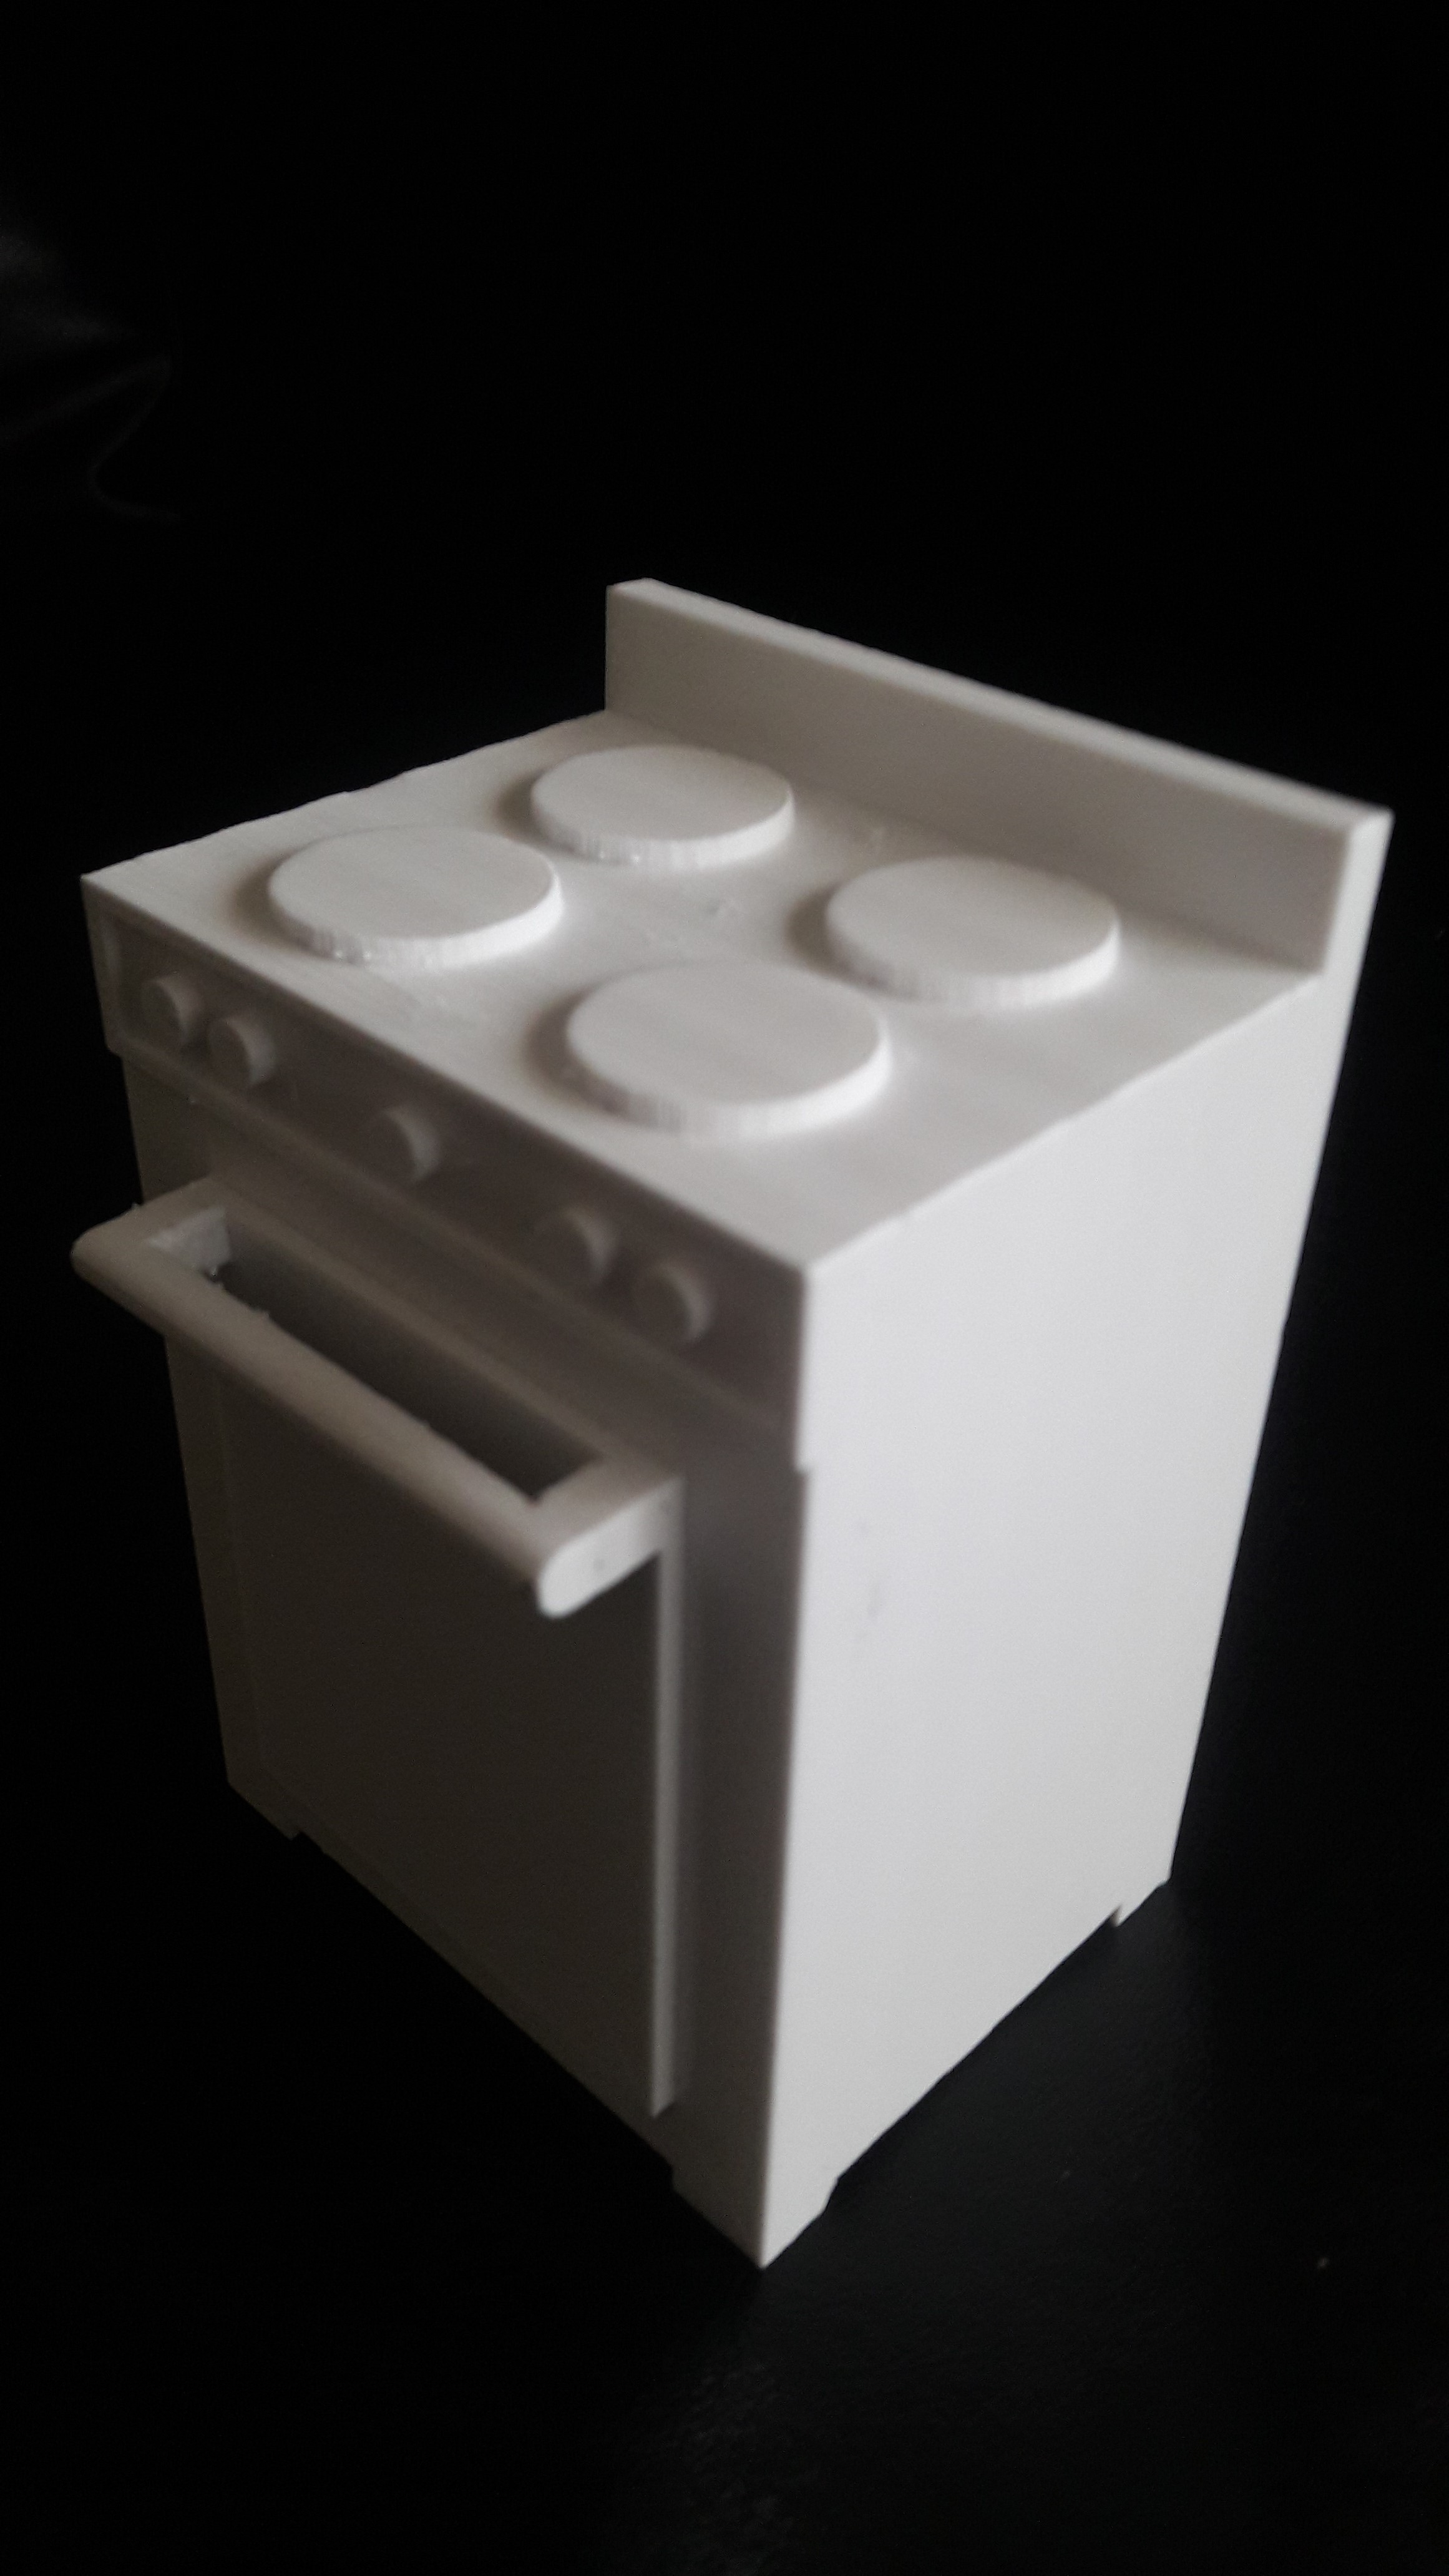 cocina2 (1).jpg Download STL file KITCHEN FOR DOLL'S HOUSE • Template to 3D print, ELBONAERENSE